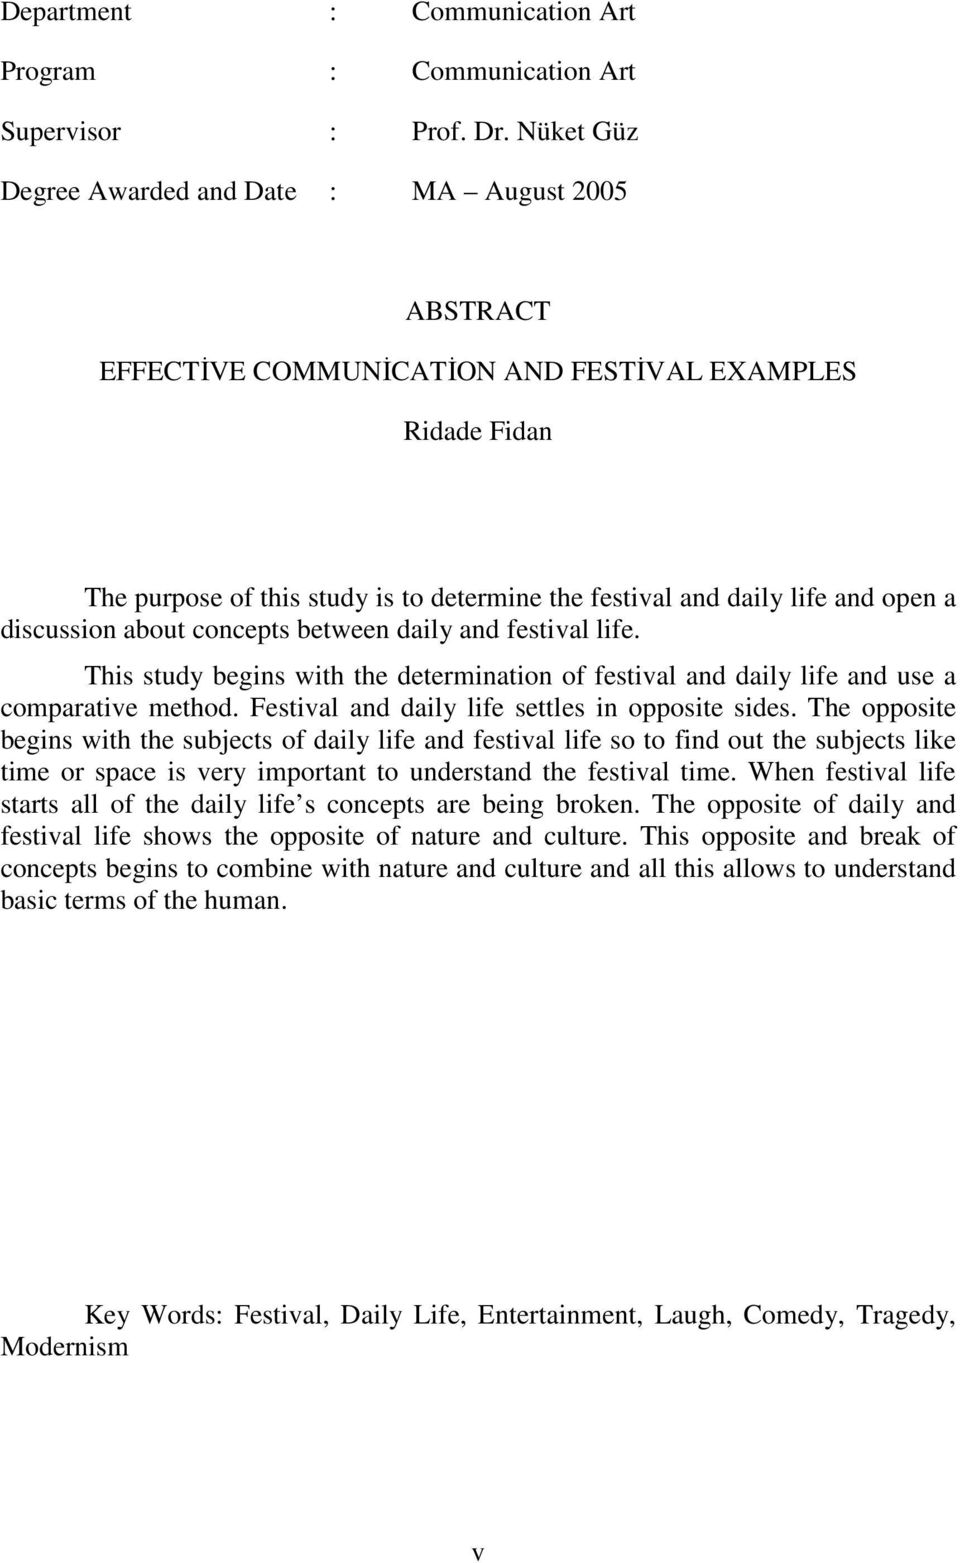 discussion about concepts between daily and festival life. This study begins with the determination of festival and daily life and use a comparative method.